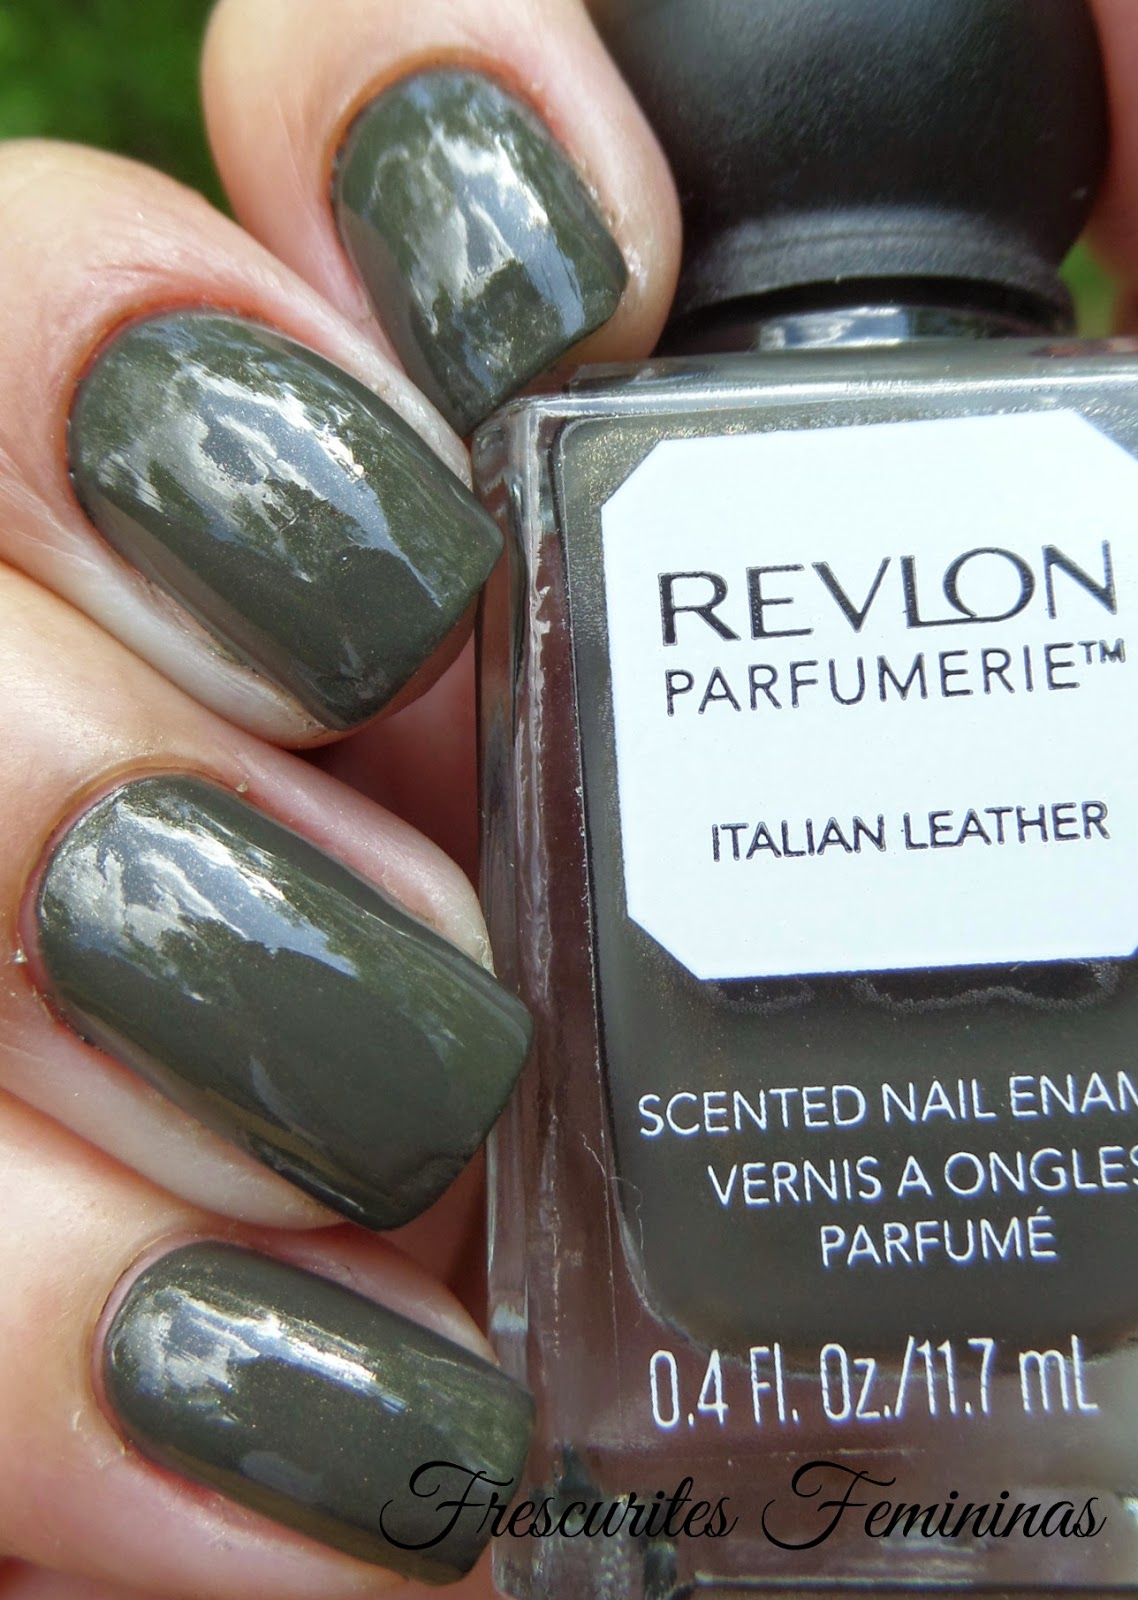 Revlon, Italian, Leather, Nail, Polish, Dark, Winter, Micro, Glitter, Golden, Frescurites, Femininas